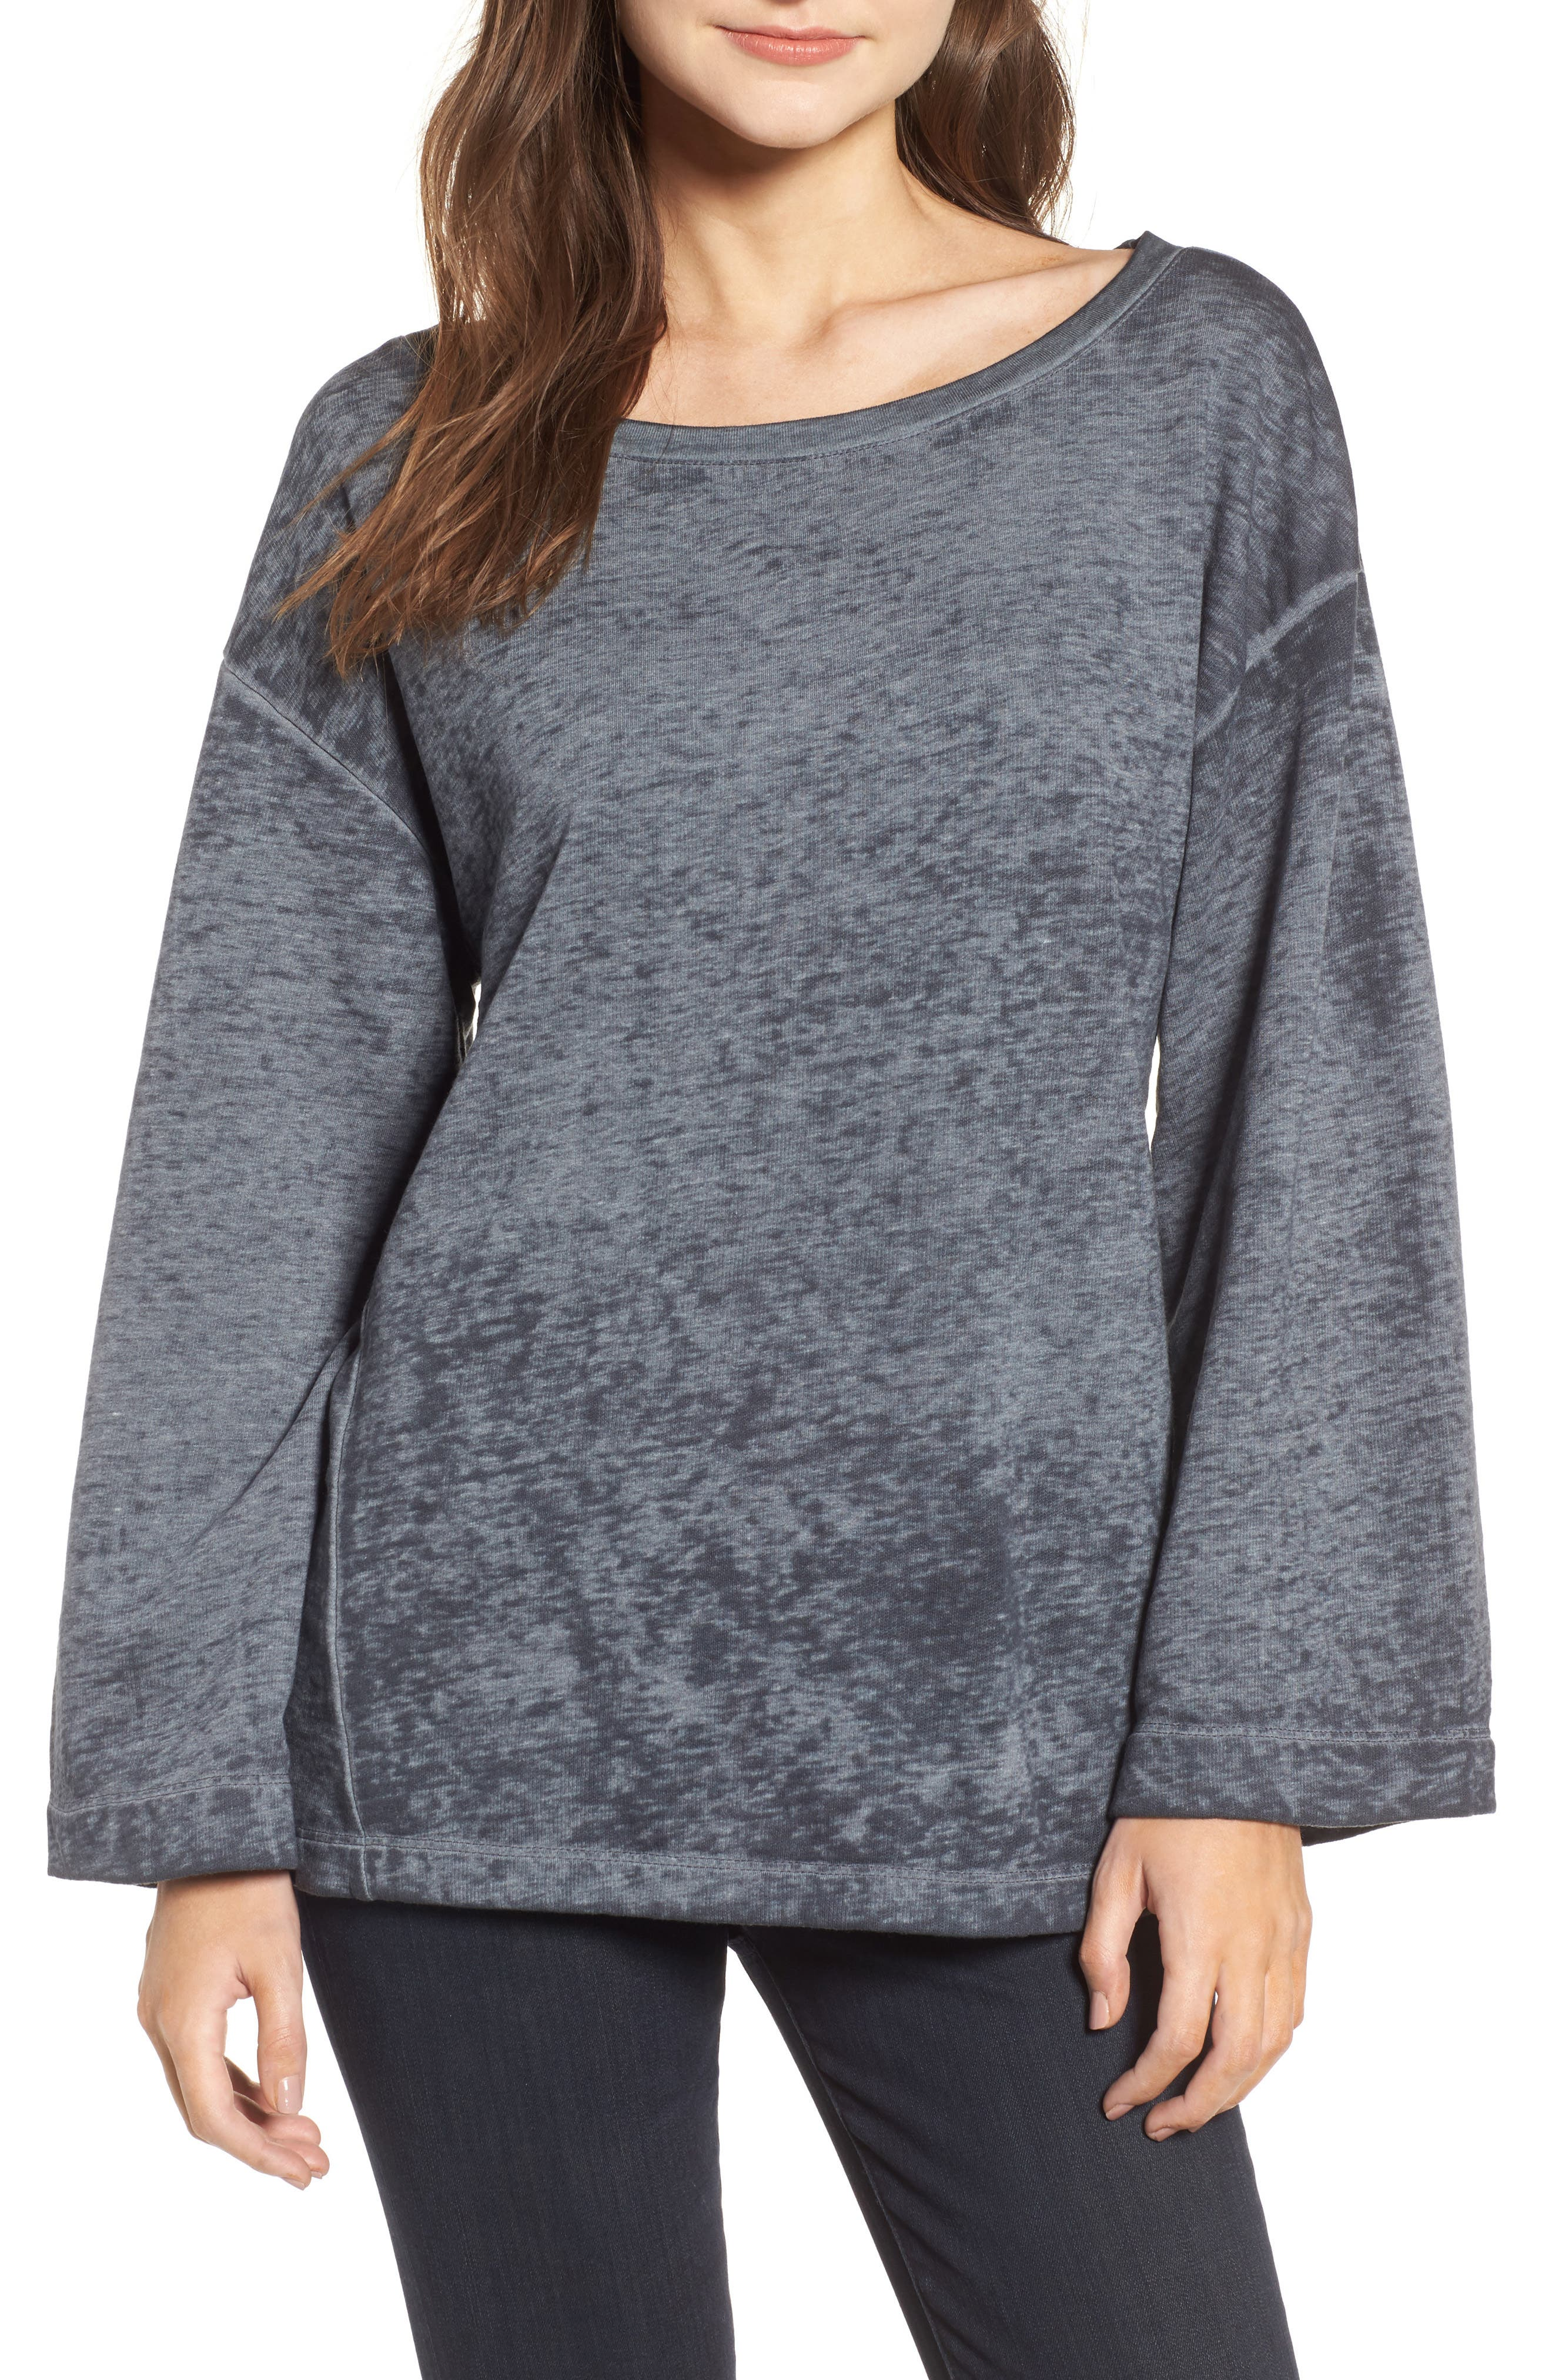 Bell Sleeve Sweatshirt,                         Main,                         color, 020